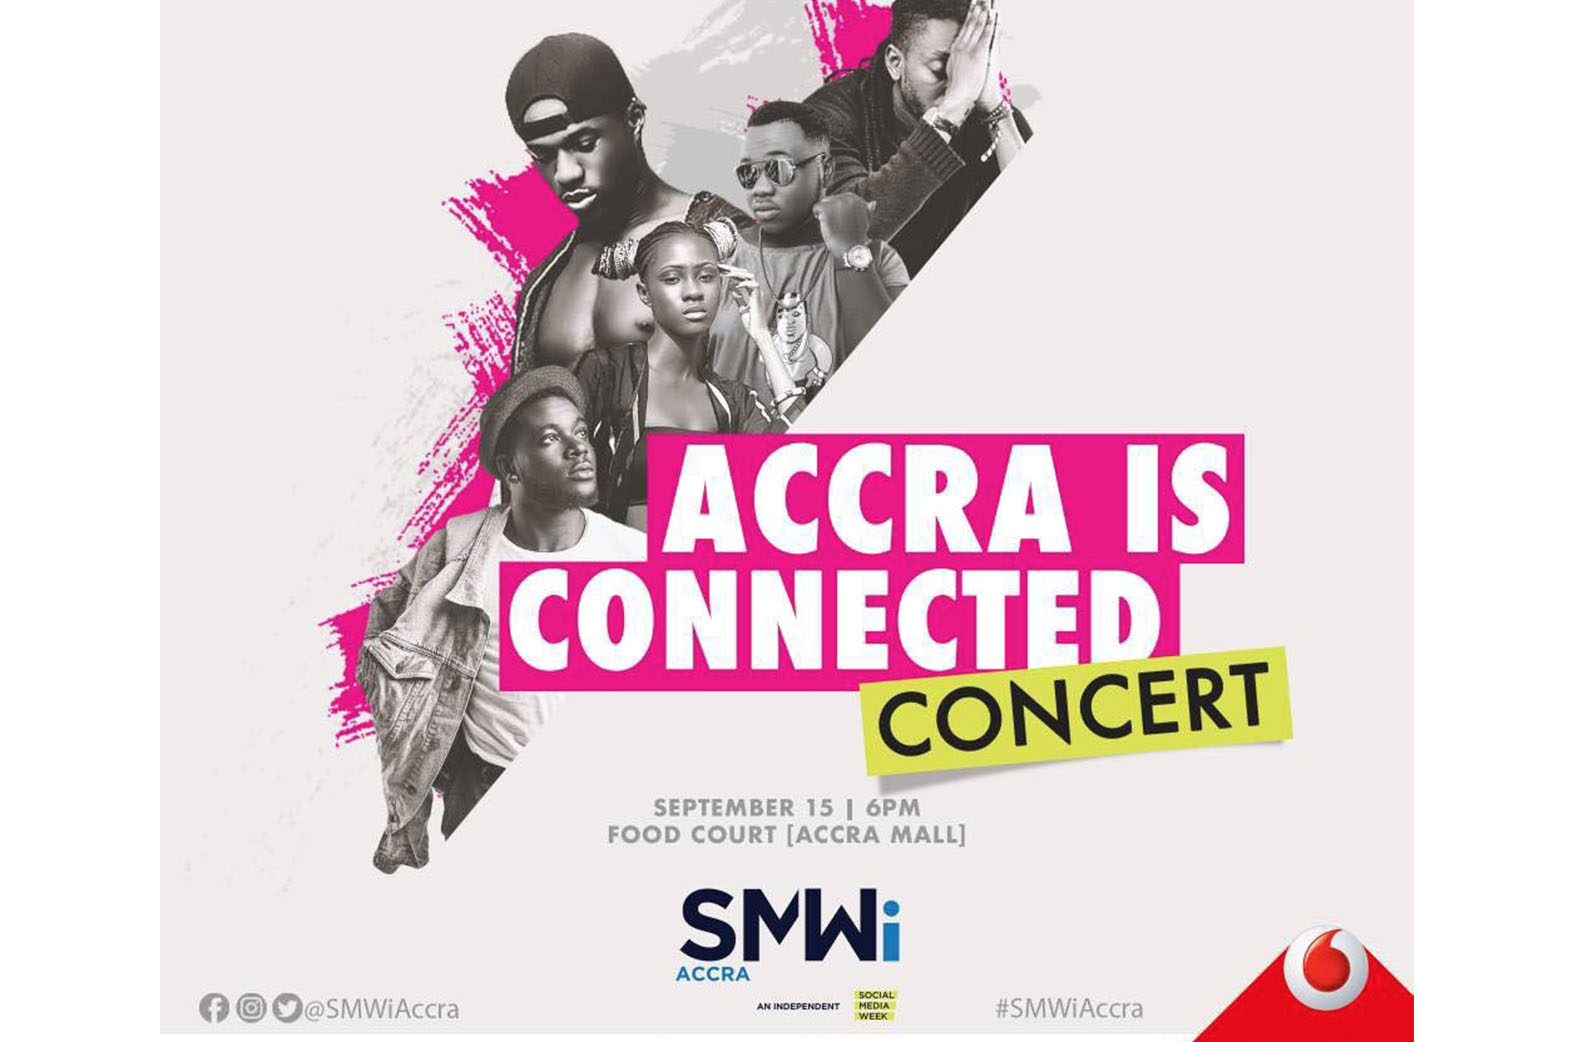 SMWiAccra, Social Media Week Accra, Accra Is Connected, Cina Soul, Joey B, B4Bonah, Pappy Kojo, CJ Biggerman